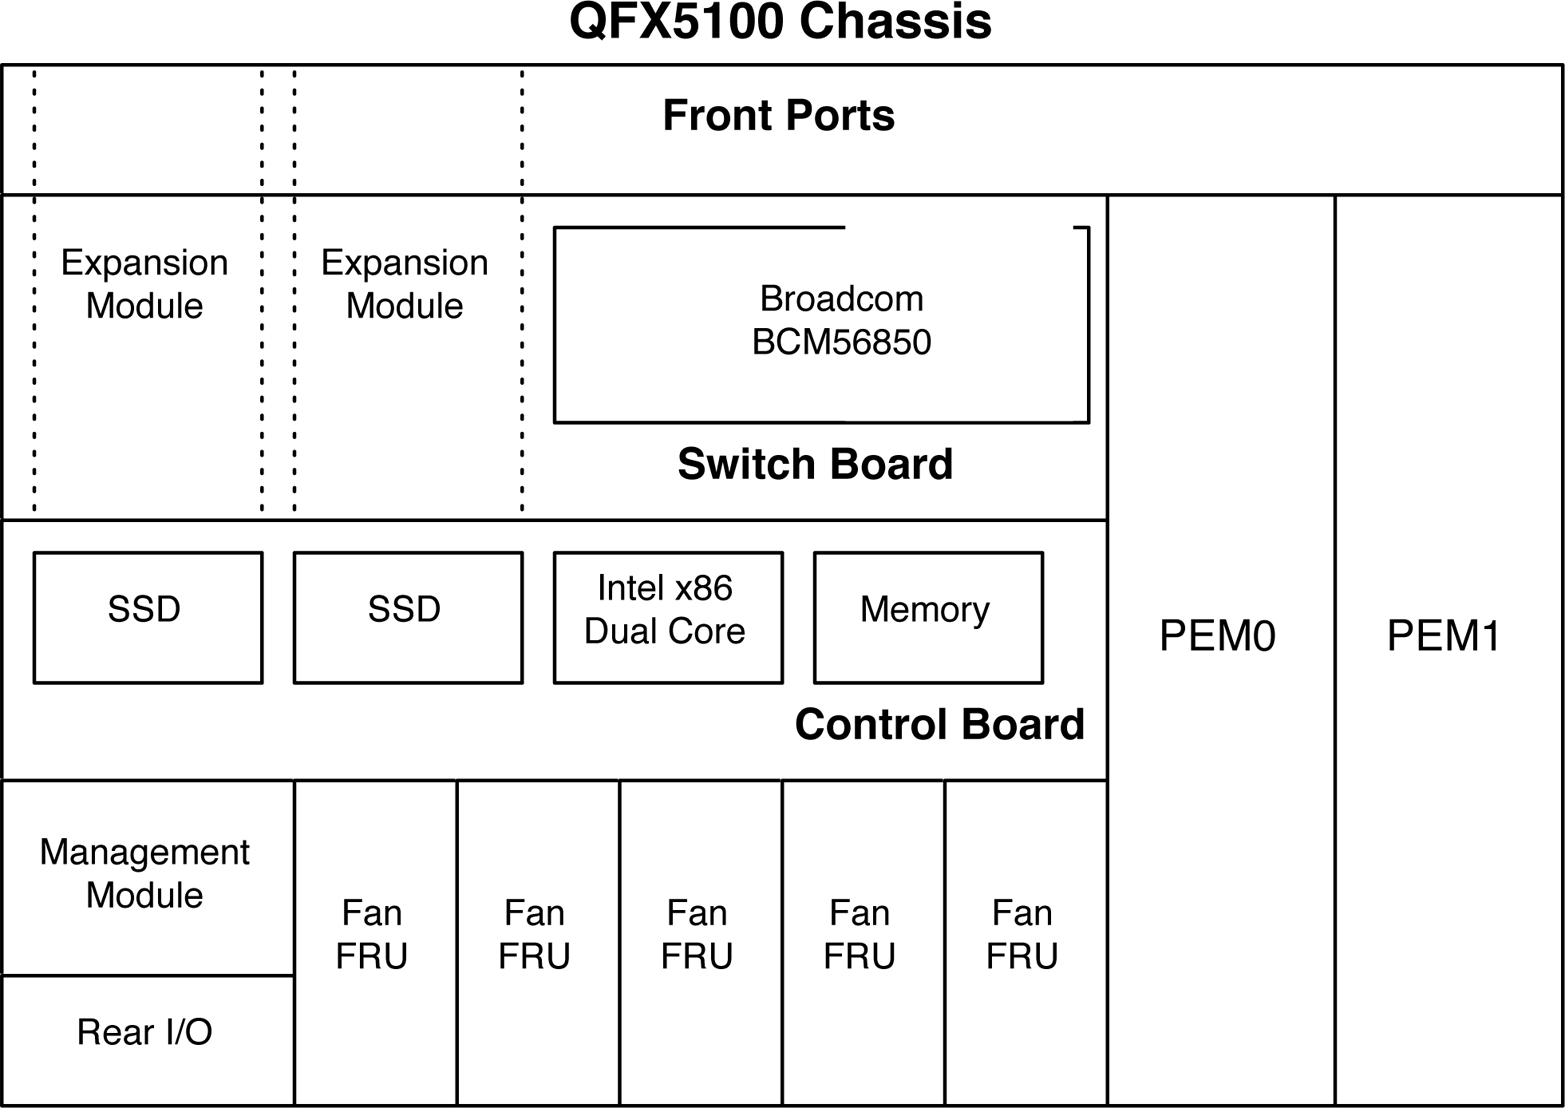 Juniper QFX5100 family hardware architecture